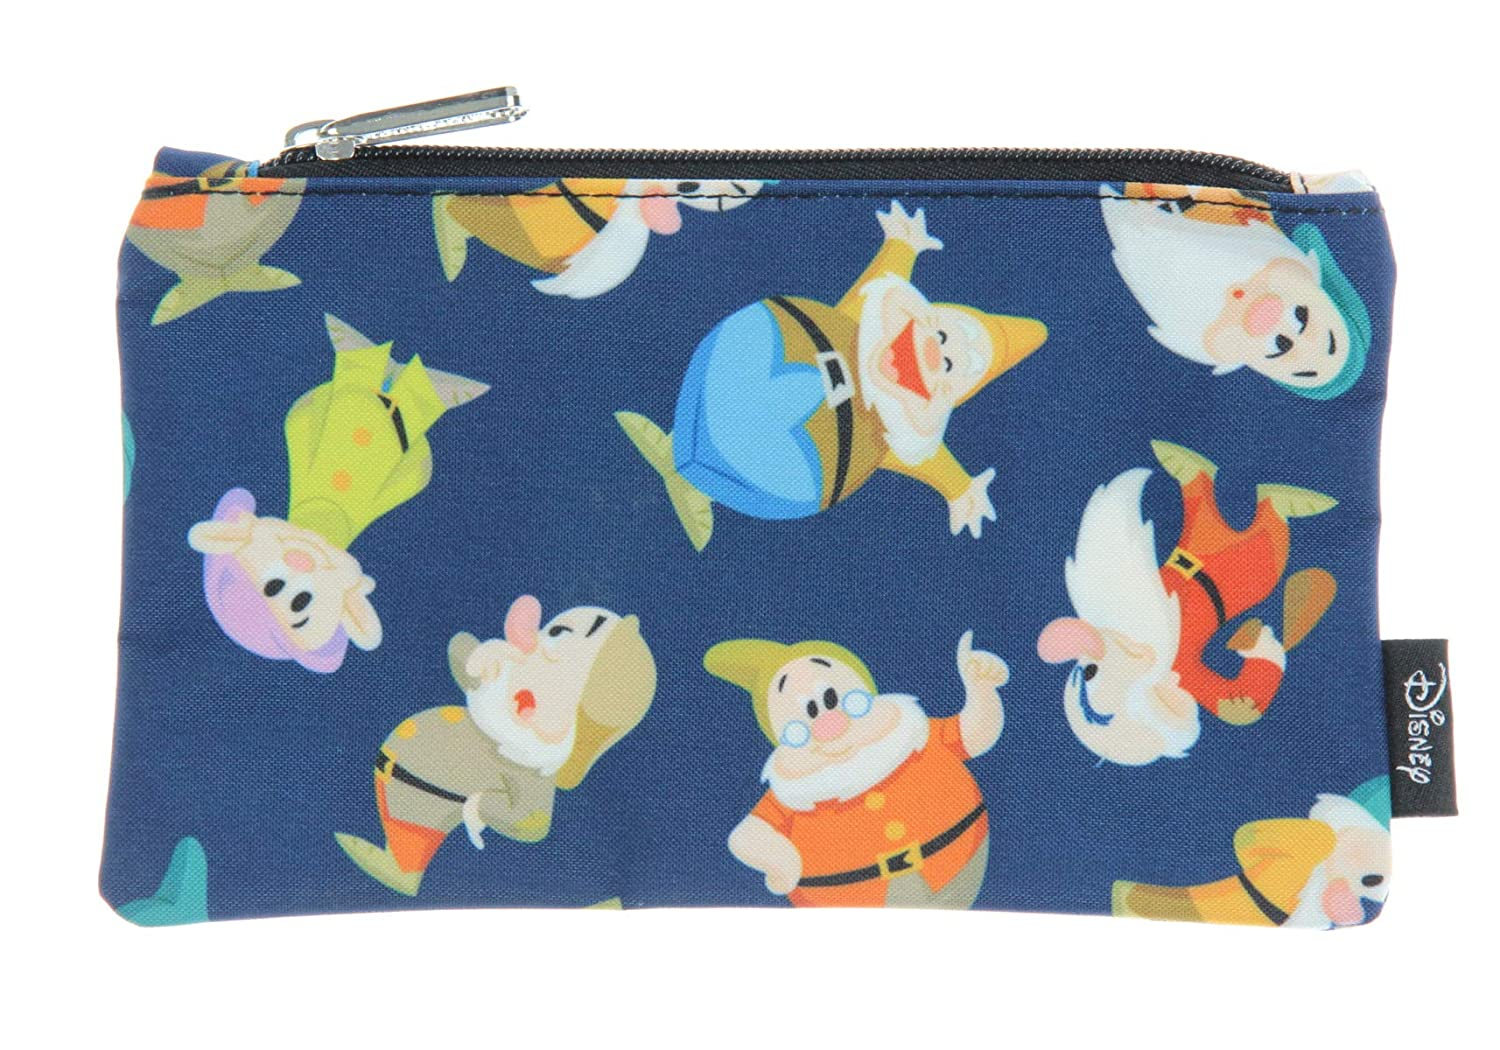 Loungefly Disney Snow White Seven Dwarfs All Over Print School Pencil Case